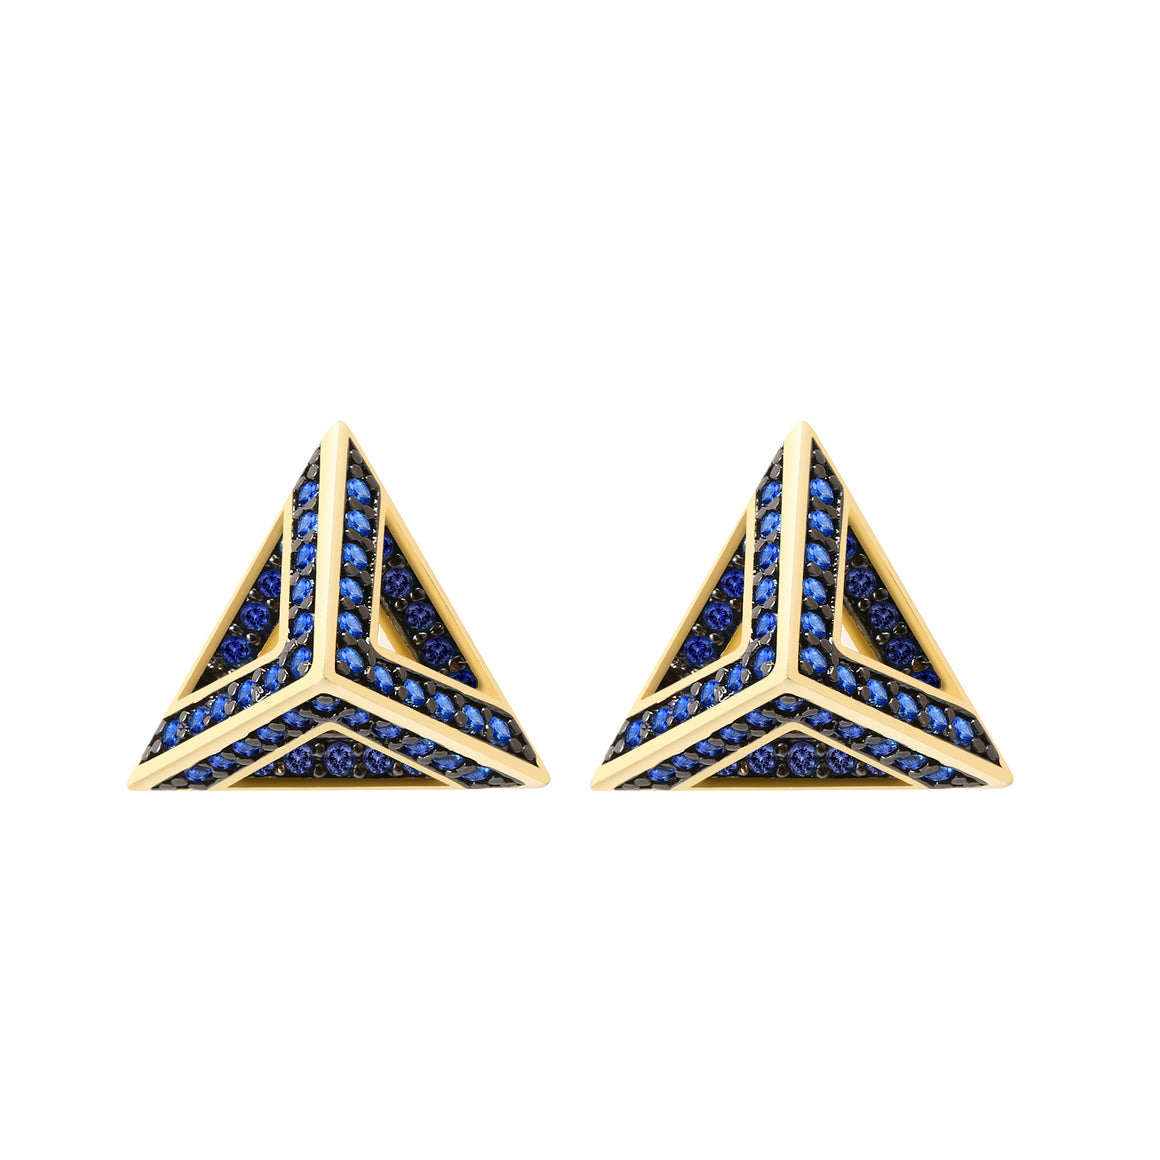 Pyramid Earring Studs, CZ Paved Gold Earrings (Capri Blue CZ)